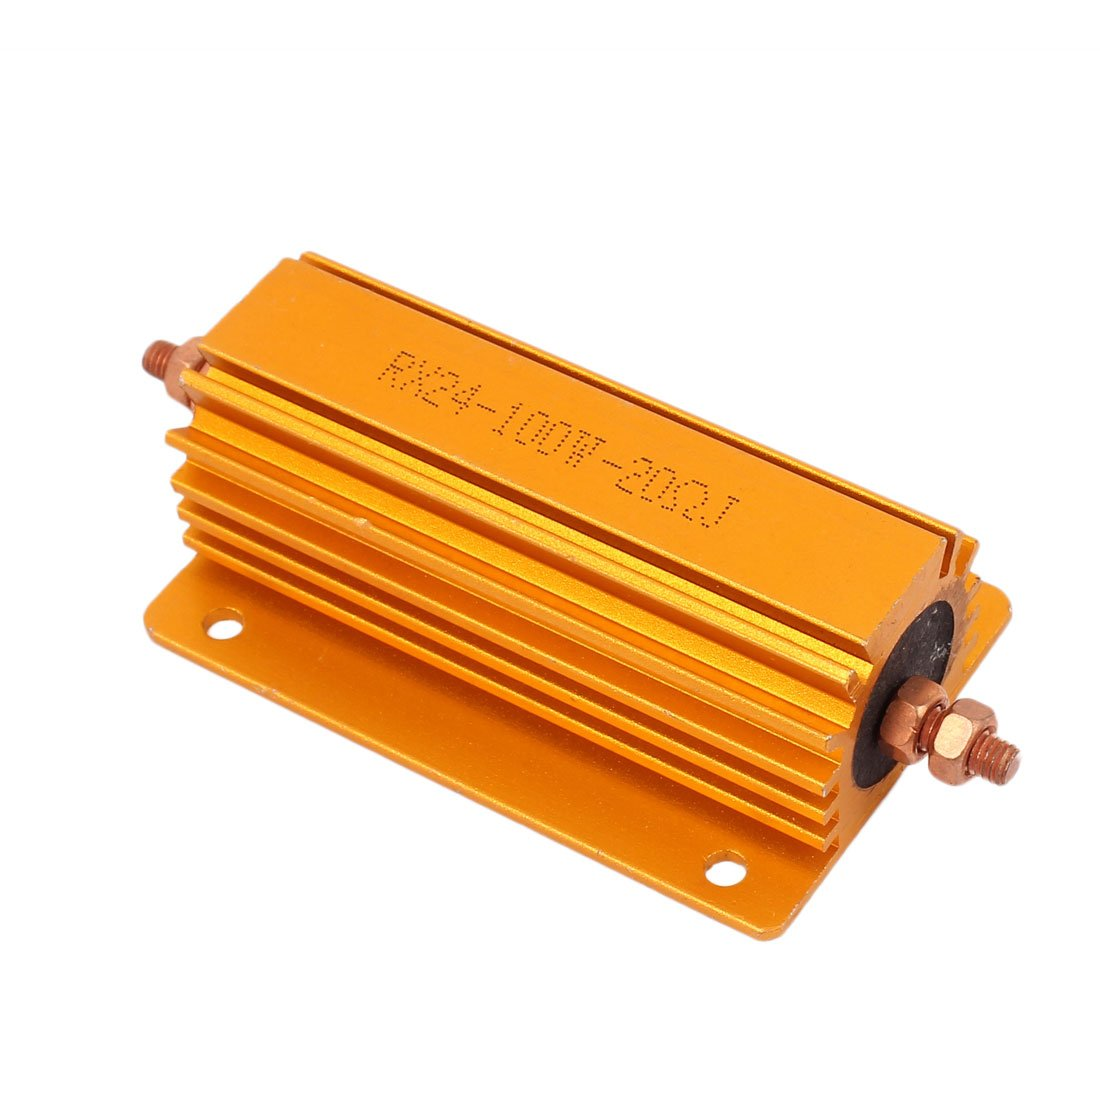 Uxcell a16092100ux1163 100W 20 Ohm Gold Tone Chassis Mounted Aluminum Shell Clad Resistor 2.009998 Width 3.15 Length